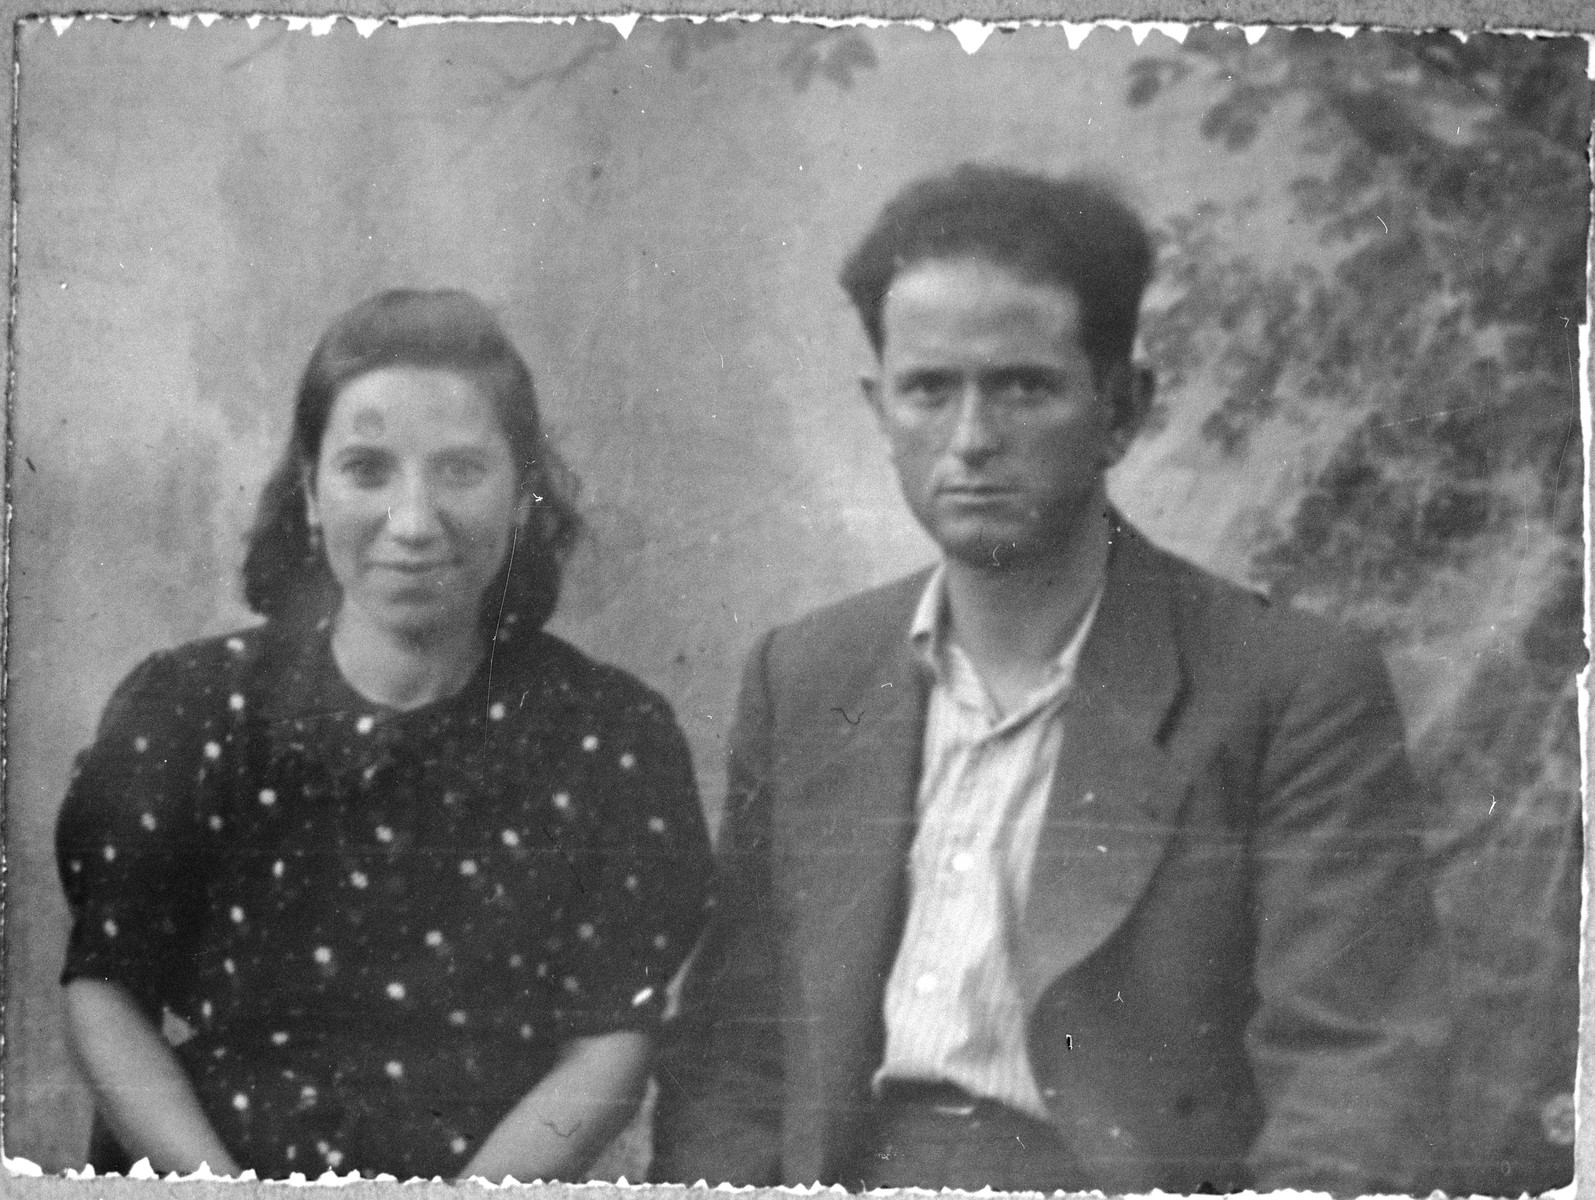 Portrait of Mois Koen, son of Shalom Koen, and Mois' wife, Miriam.  Mois was a miller.  They lived at Banatska 21 in Bitola.